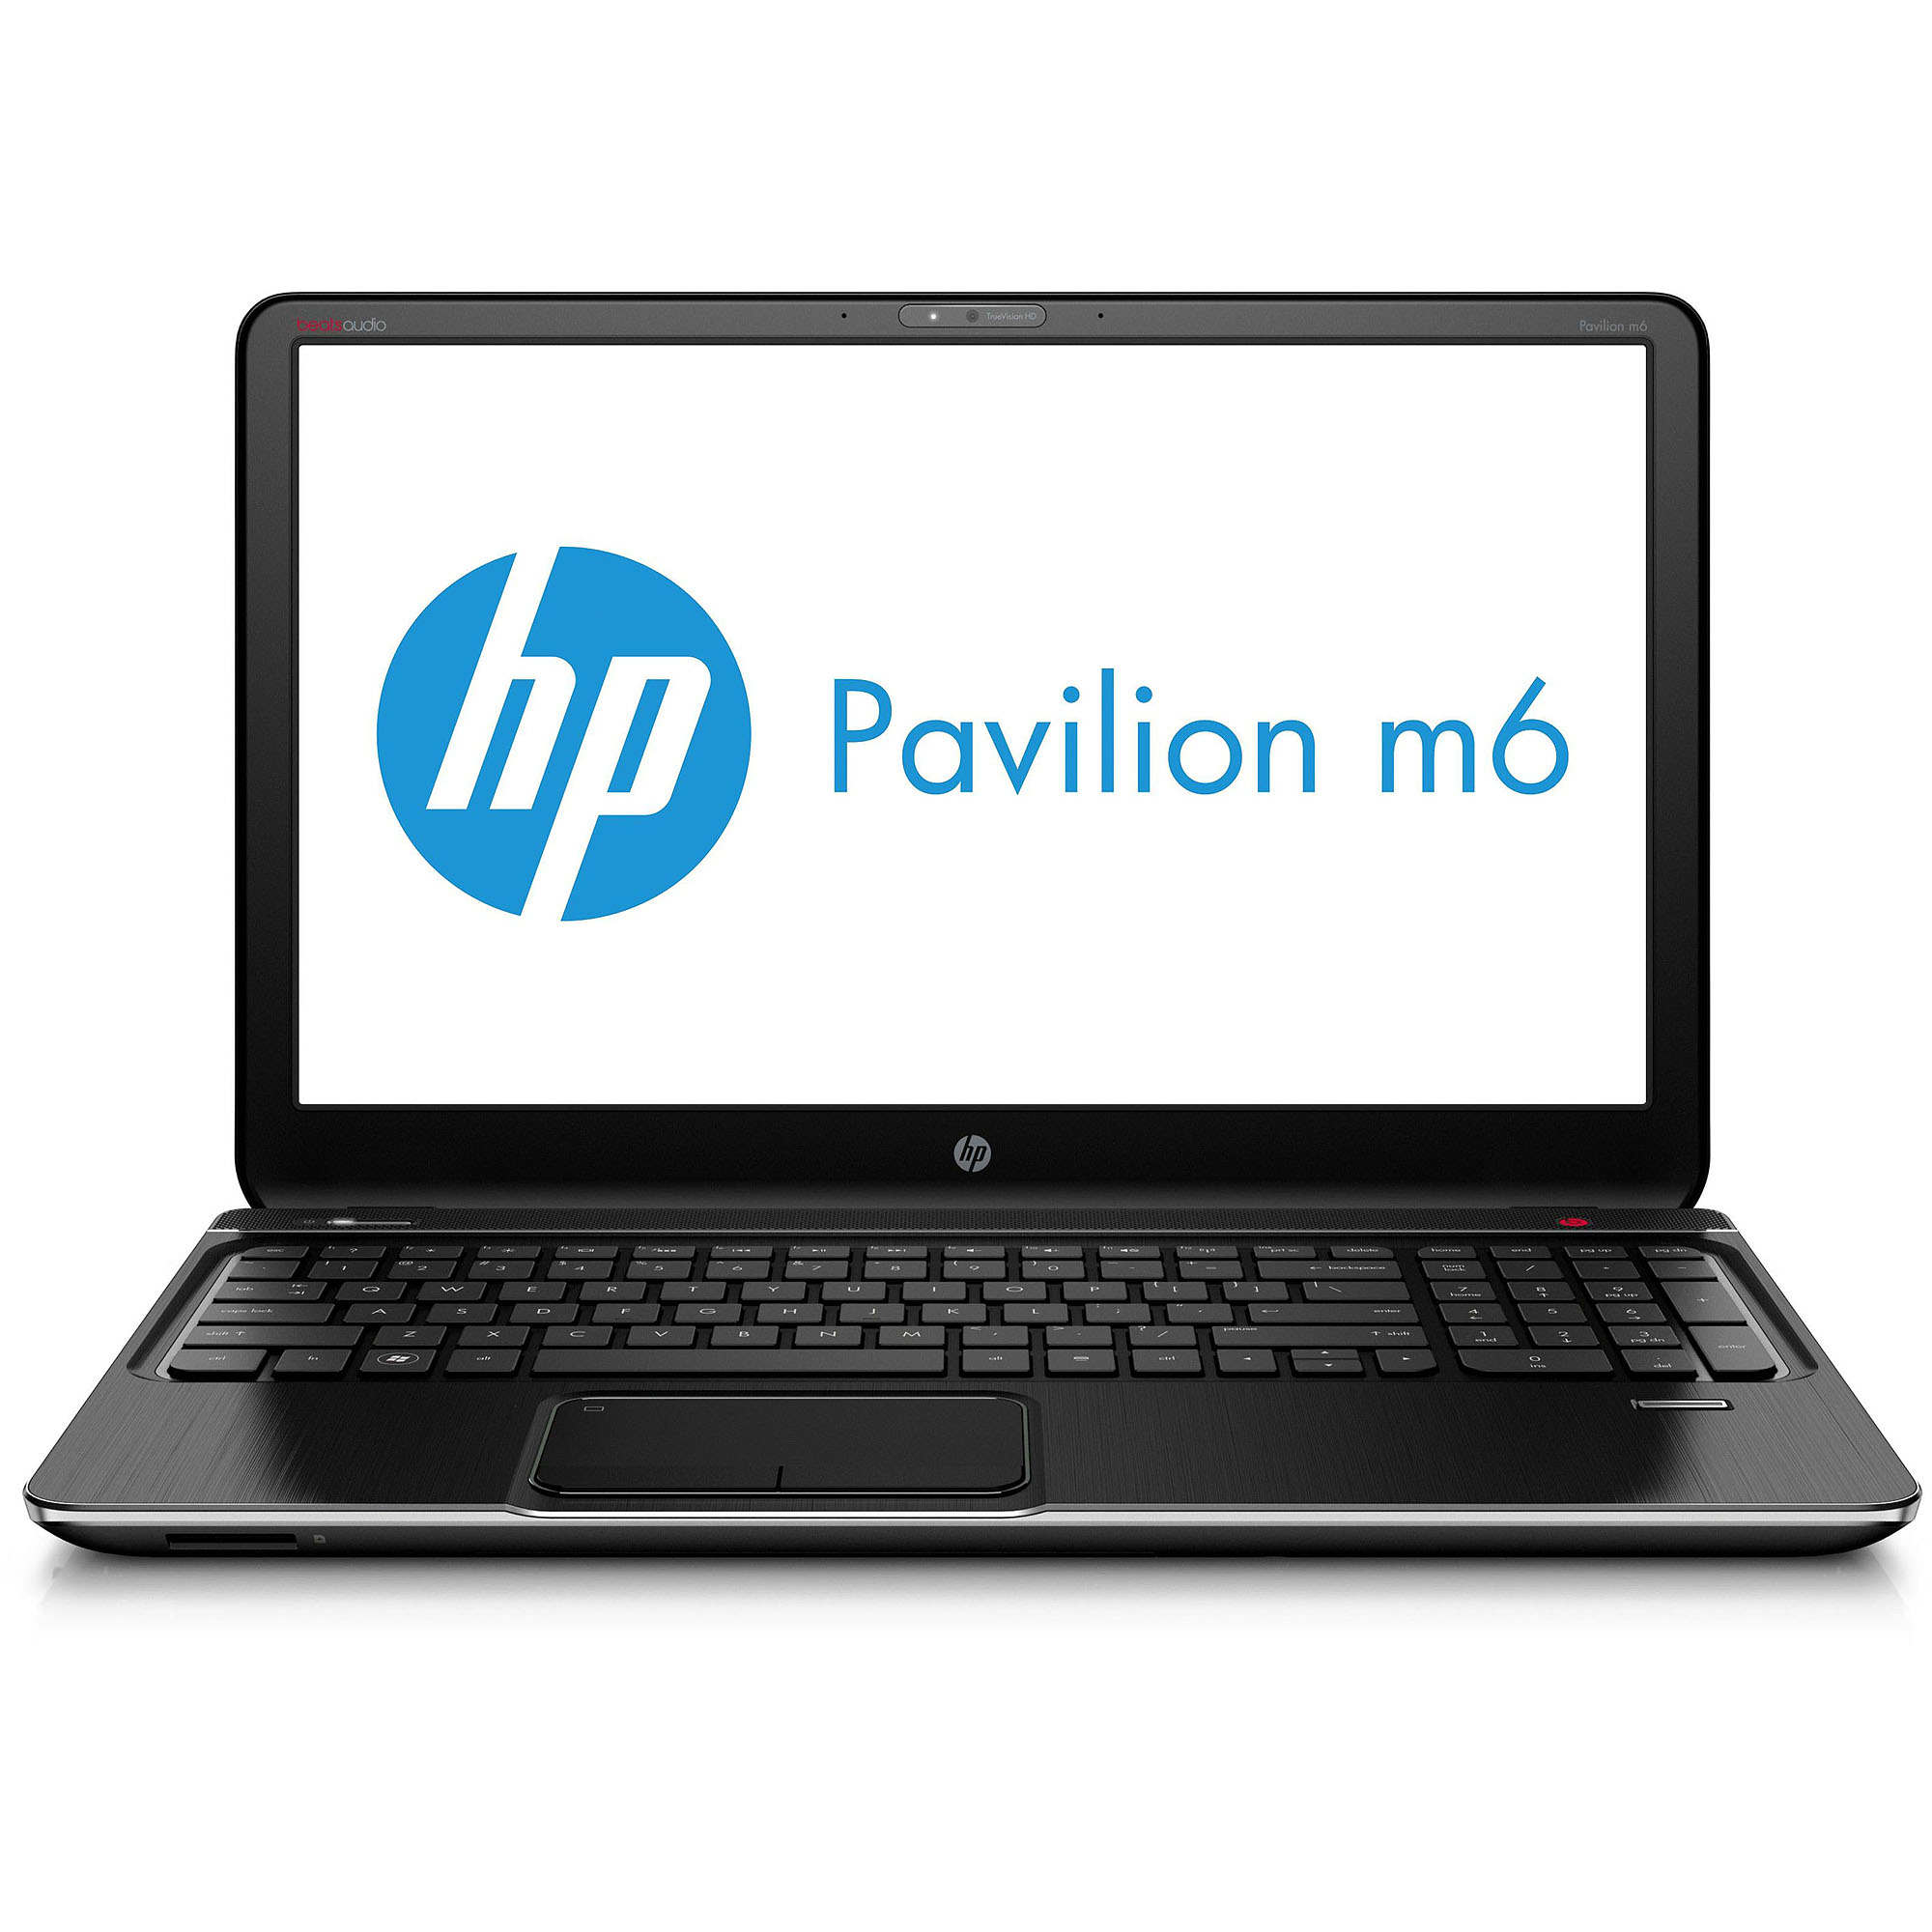 """HP Midnight Black 15.6"""" Refurbished Pavilion m6-1035dx Laptop PC with AMD Quad-Core A10-4600M Accelerated Processor and Windows 7 Home Premium"""